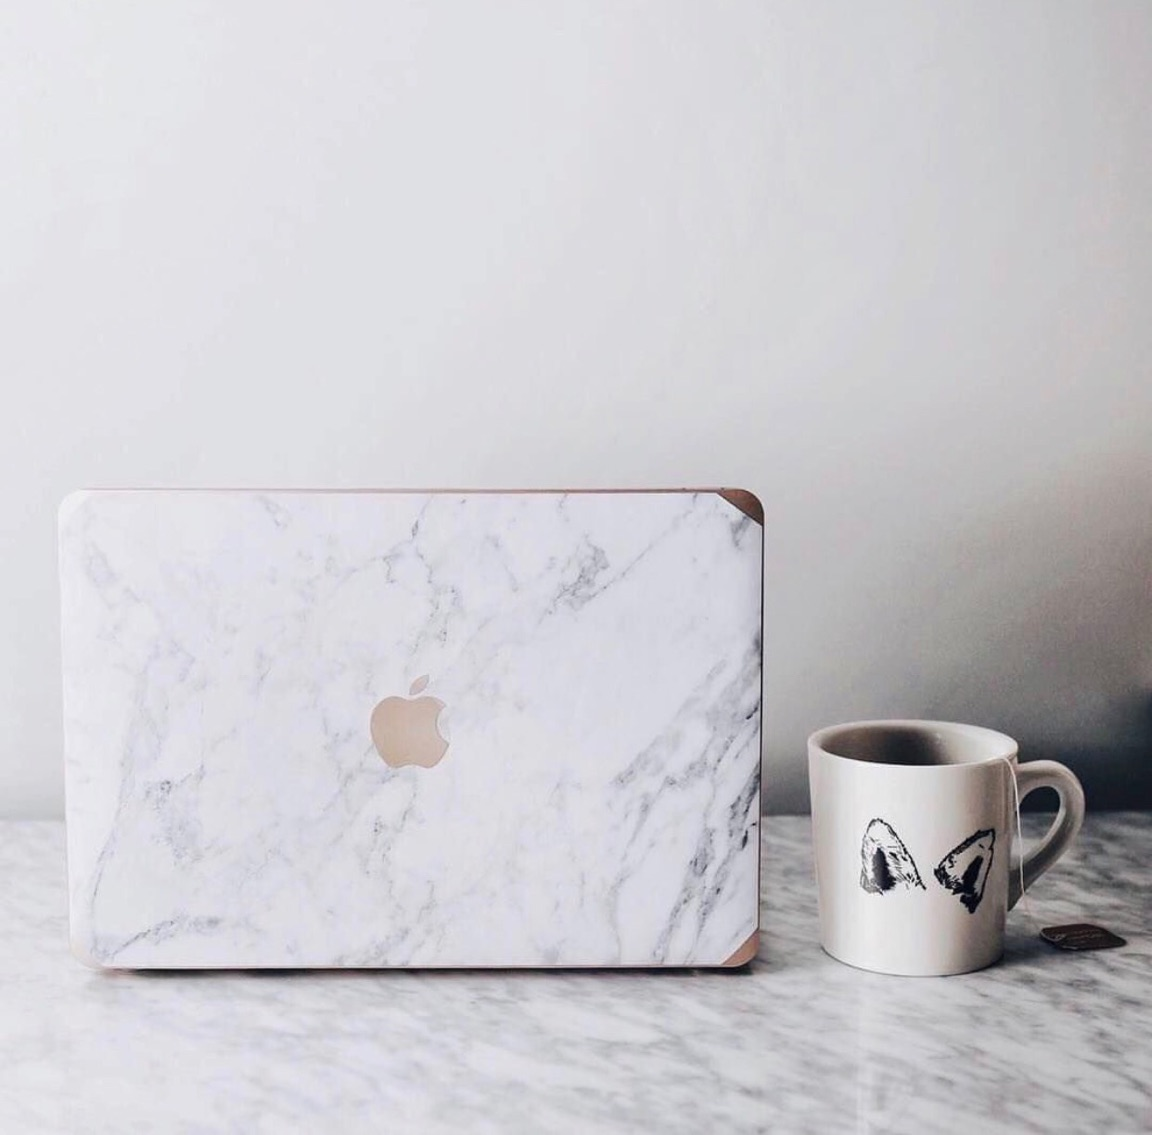 A Janet Gwen Designs Grey Marble Laptop Case - Show your Macbook® some love with a Janet Gwen Designs marble case. Simple, timeless, and (seriously) chic, this practical design is bound to turn a few heads. With easy-to-use snap-on grips and a dirt & scratch-proof design, this two-piece set is more than just a pretty face; its lightweight and durable design is made to withstand the typical wear and tear of the on-the-go lifestyle of a girl-boss, toting it here, there and everywhere.